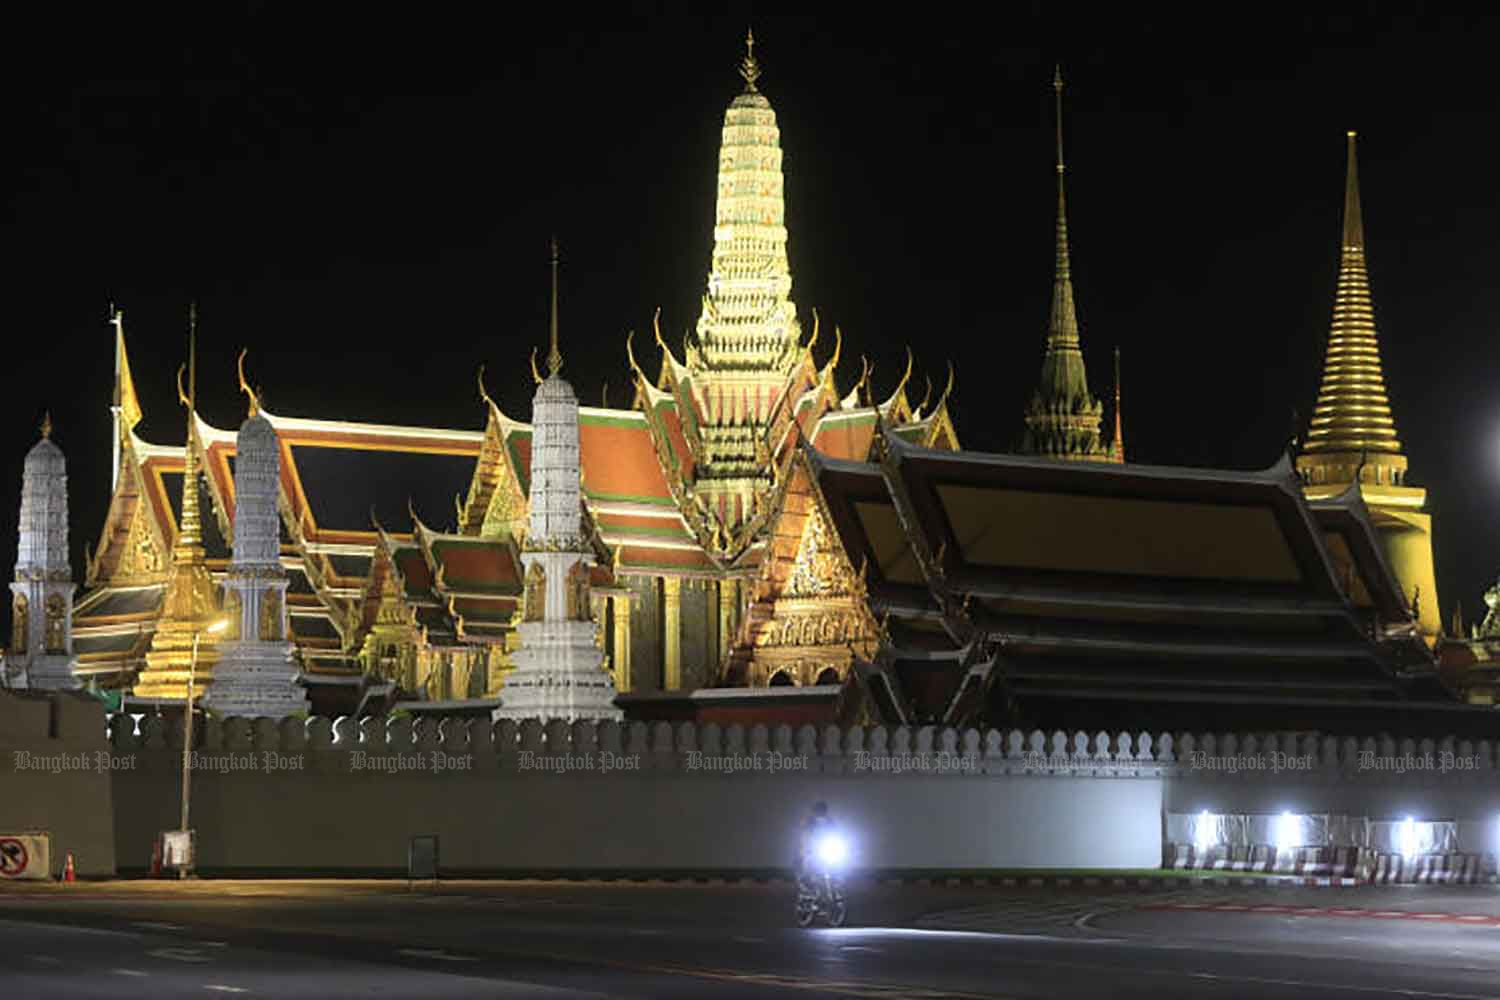 The road outside the Grand Palace is almost empty of traffic in the late evening, hours before the lauch of the 9pm-4am curfew on Monday night as part of wider measures to limint the transmission of Covid-19 in the 10 hardest-hit provinces, including Bangkok. (Photo: Pornprom Satrabhaya)